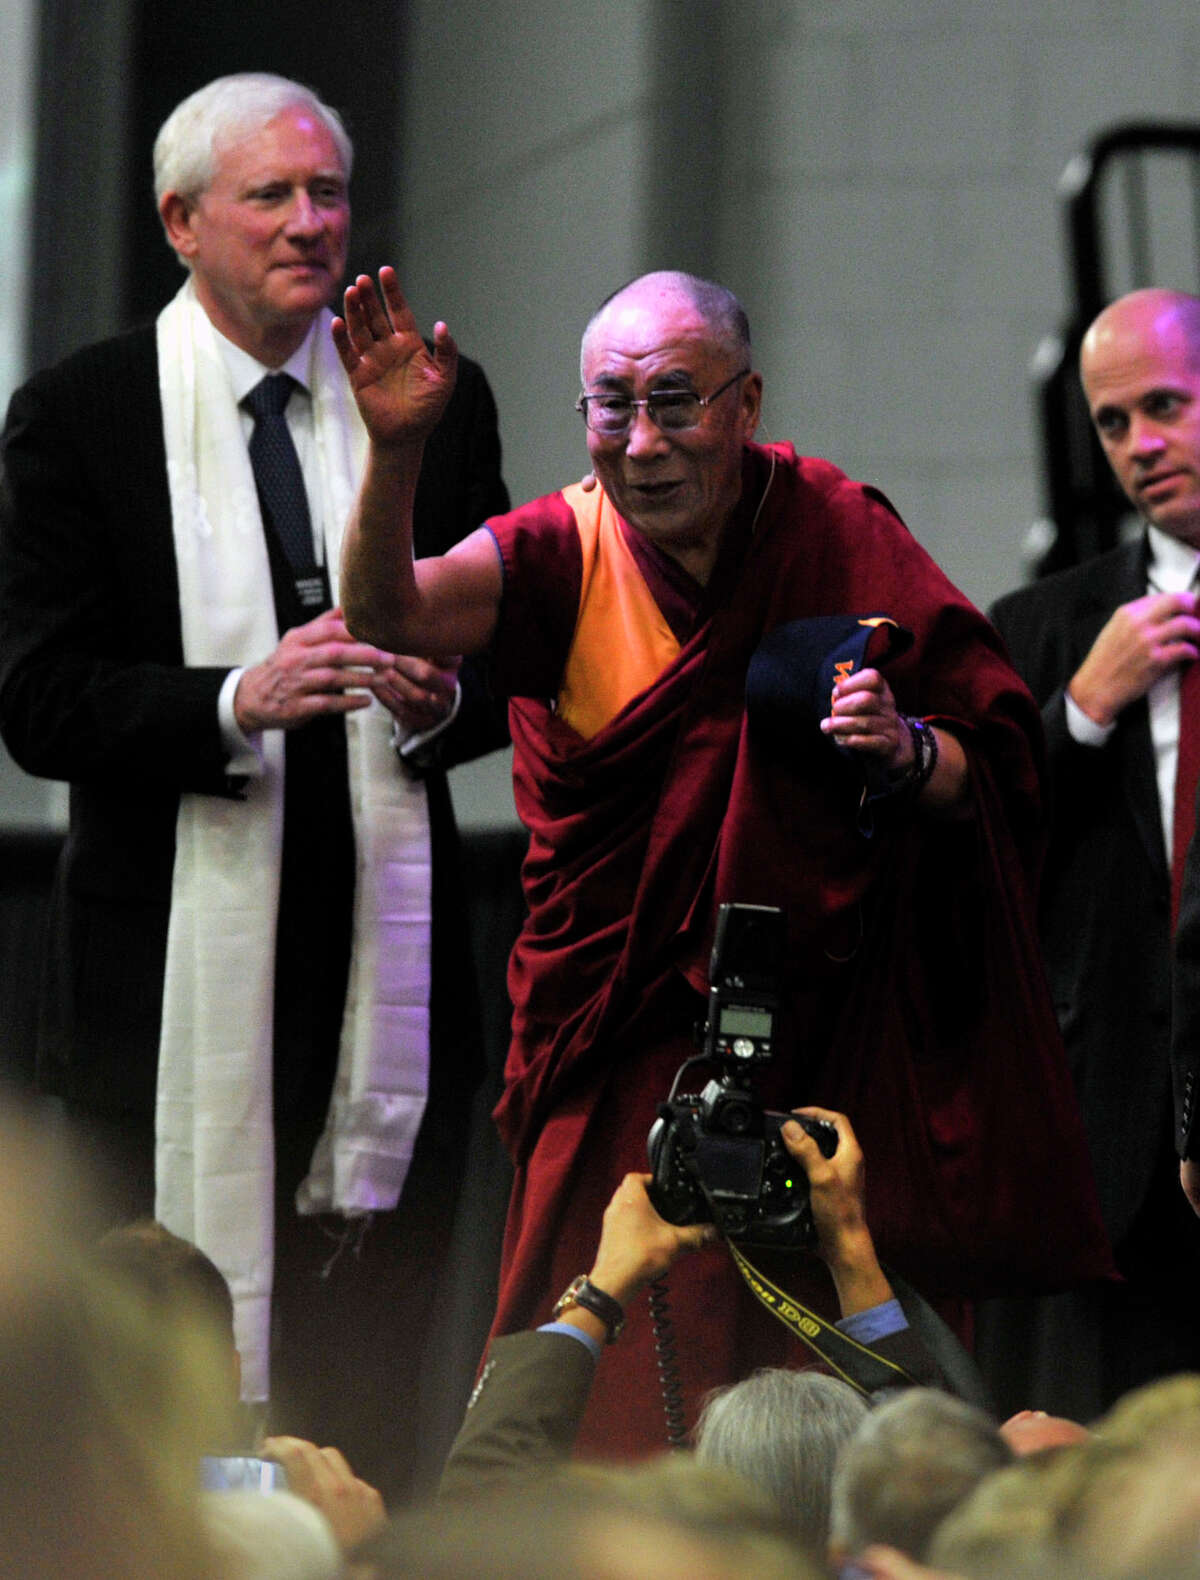 The Dalai Lama waves to the crowd at the O'Neill Center on Western Connecticut State University's west side campus after his